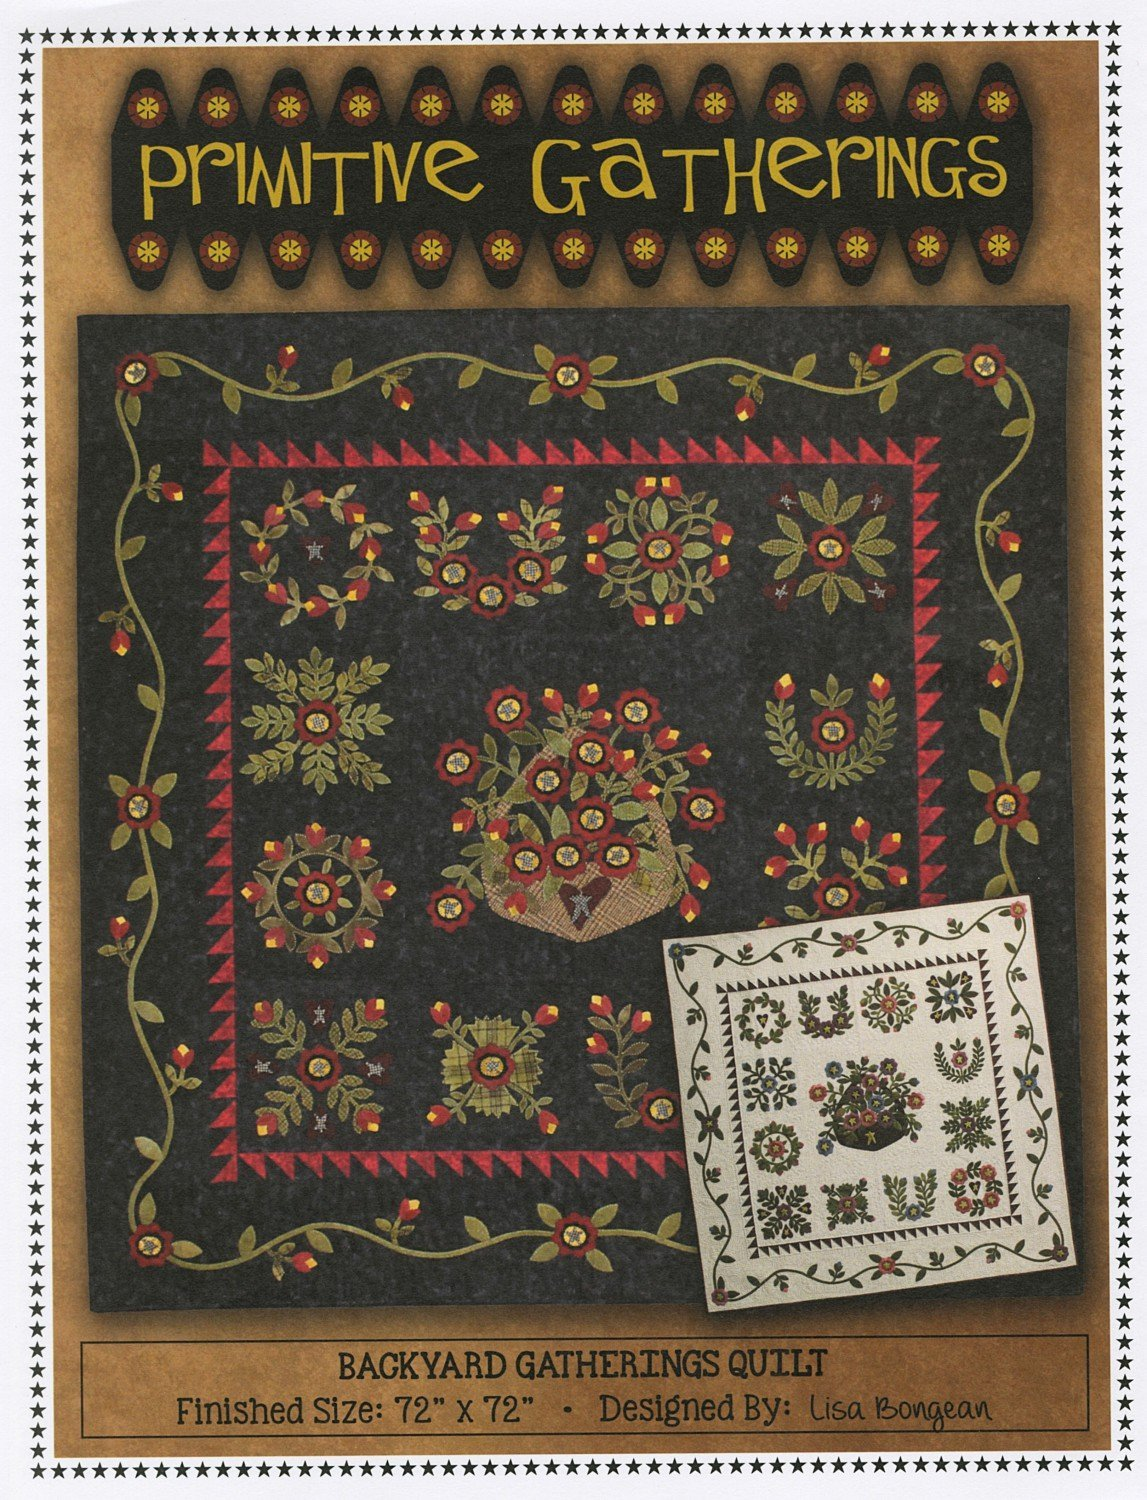 Backyard gatherings quilt